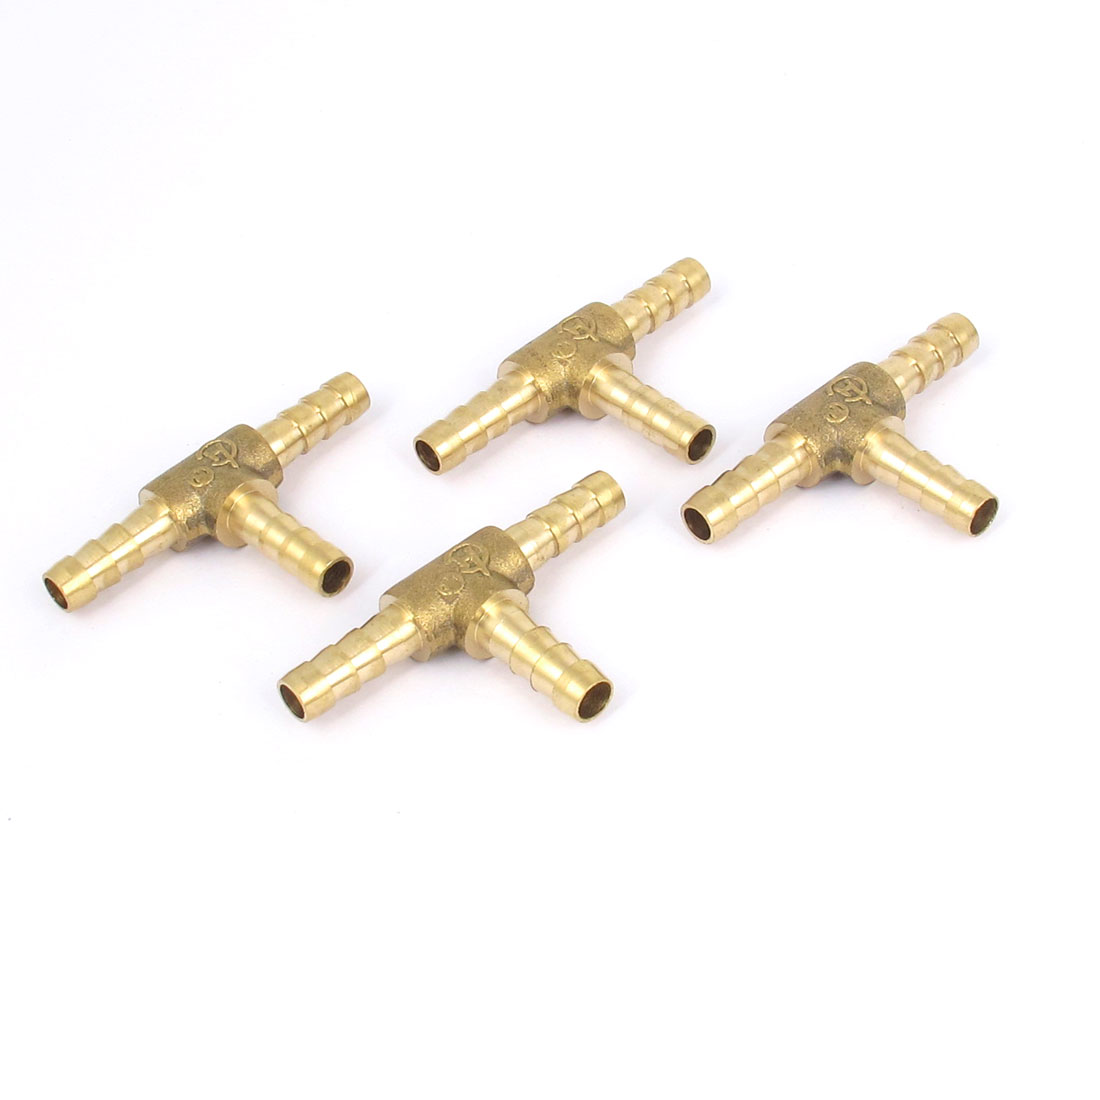 4 Pcs Brass T-Shape 3 Ways Hose Barb Fitting Adapter Coupler Connector 6mm Dia